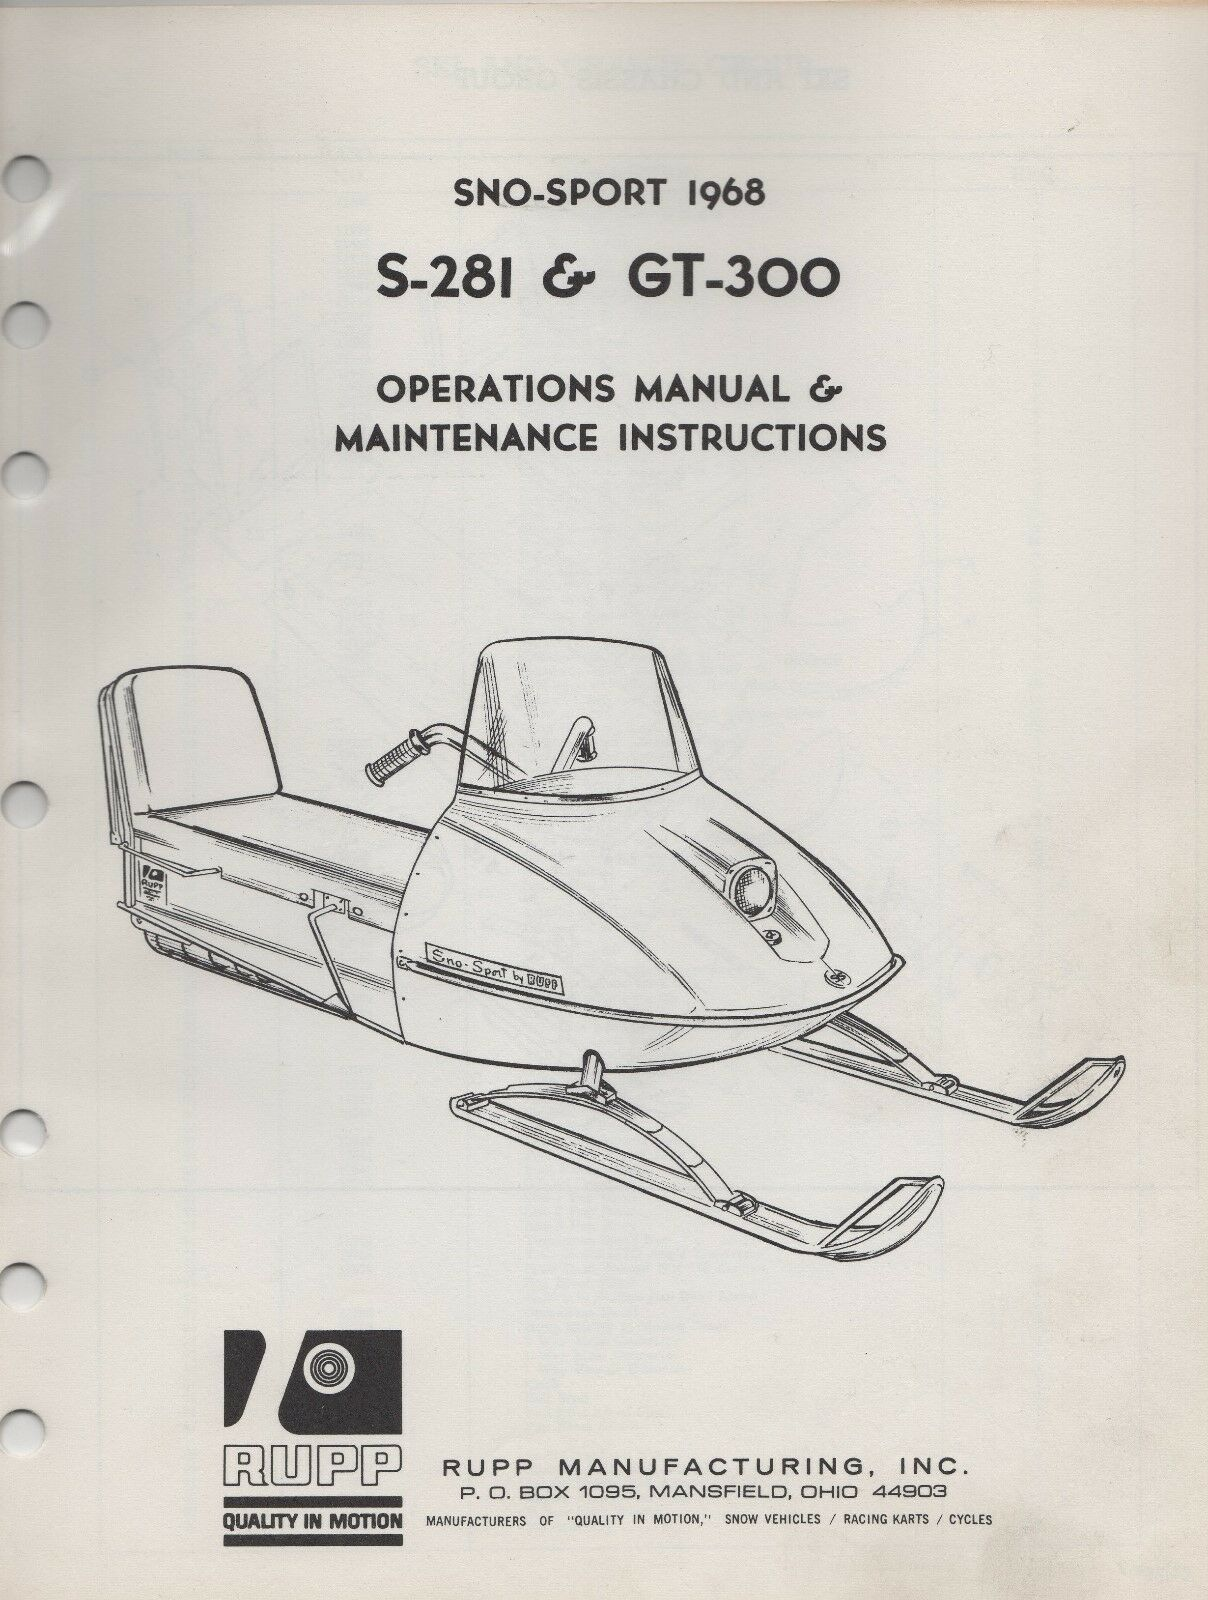 1968 RUPP SNOWMOBILE SNO-SPORT OPERATIONS ,MAINTENANCE MANUAL (645)